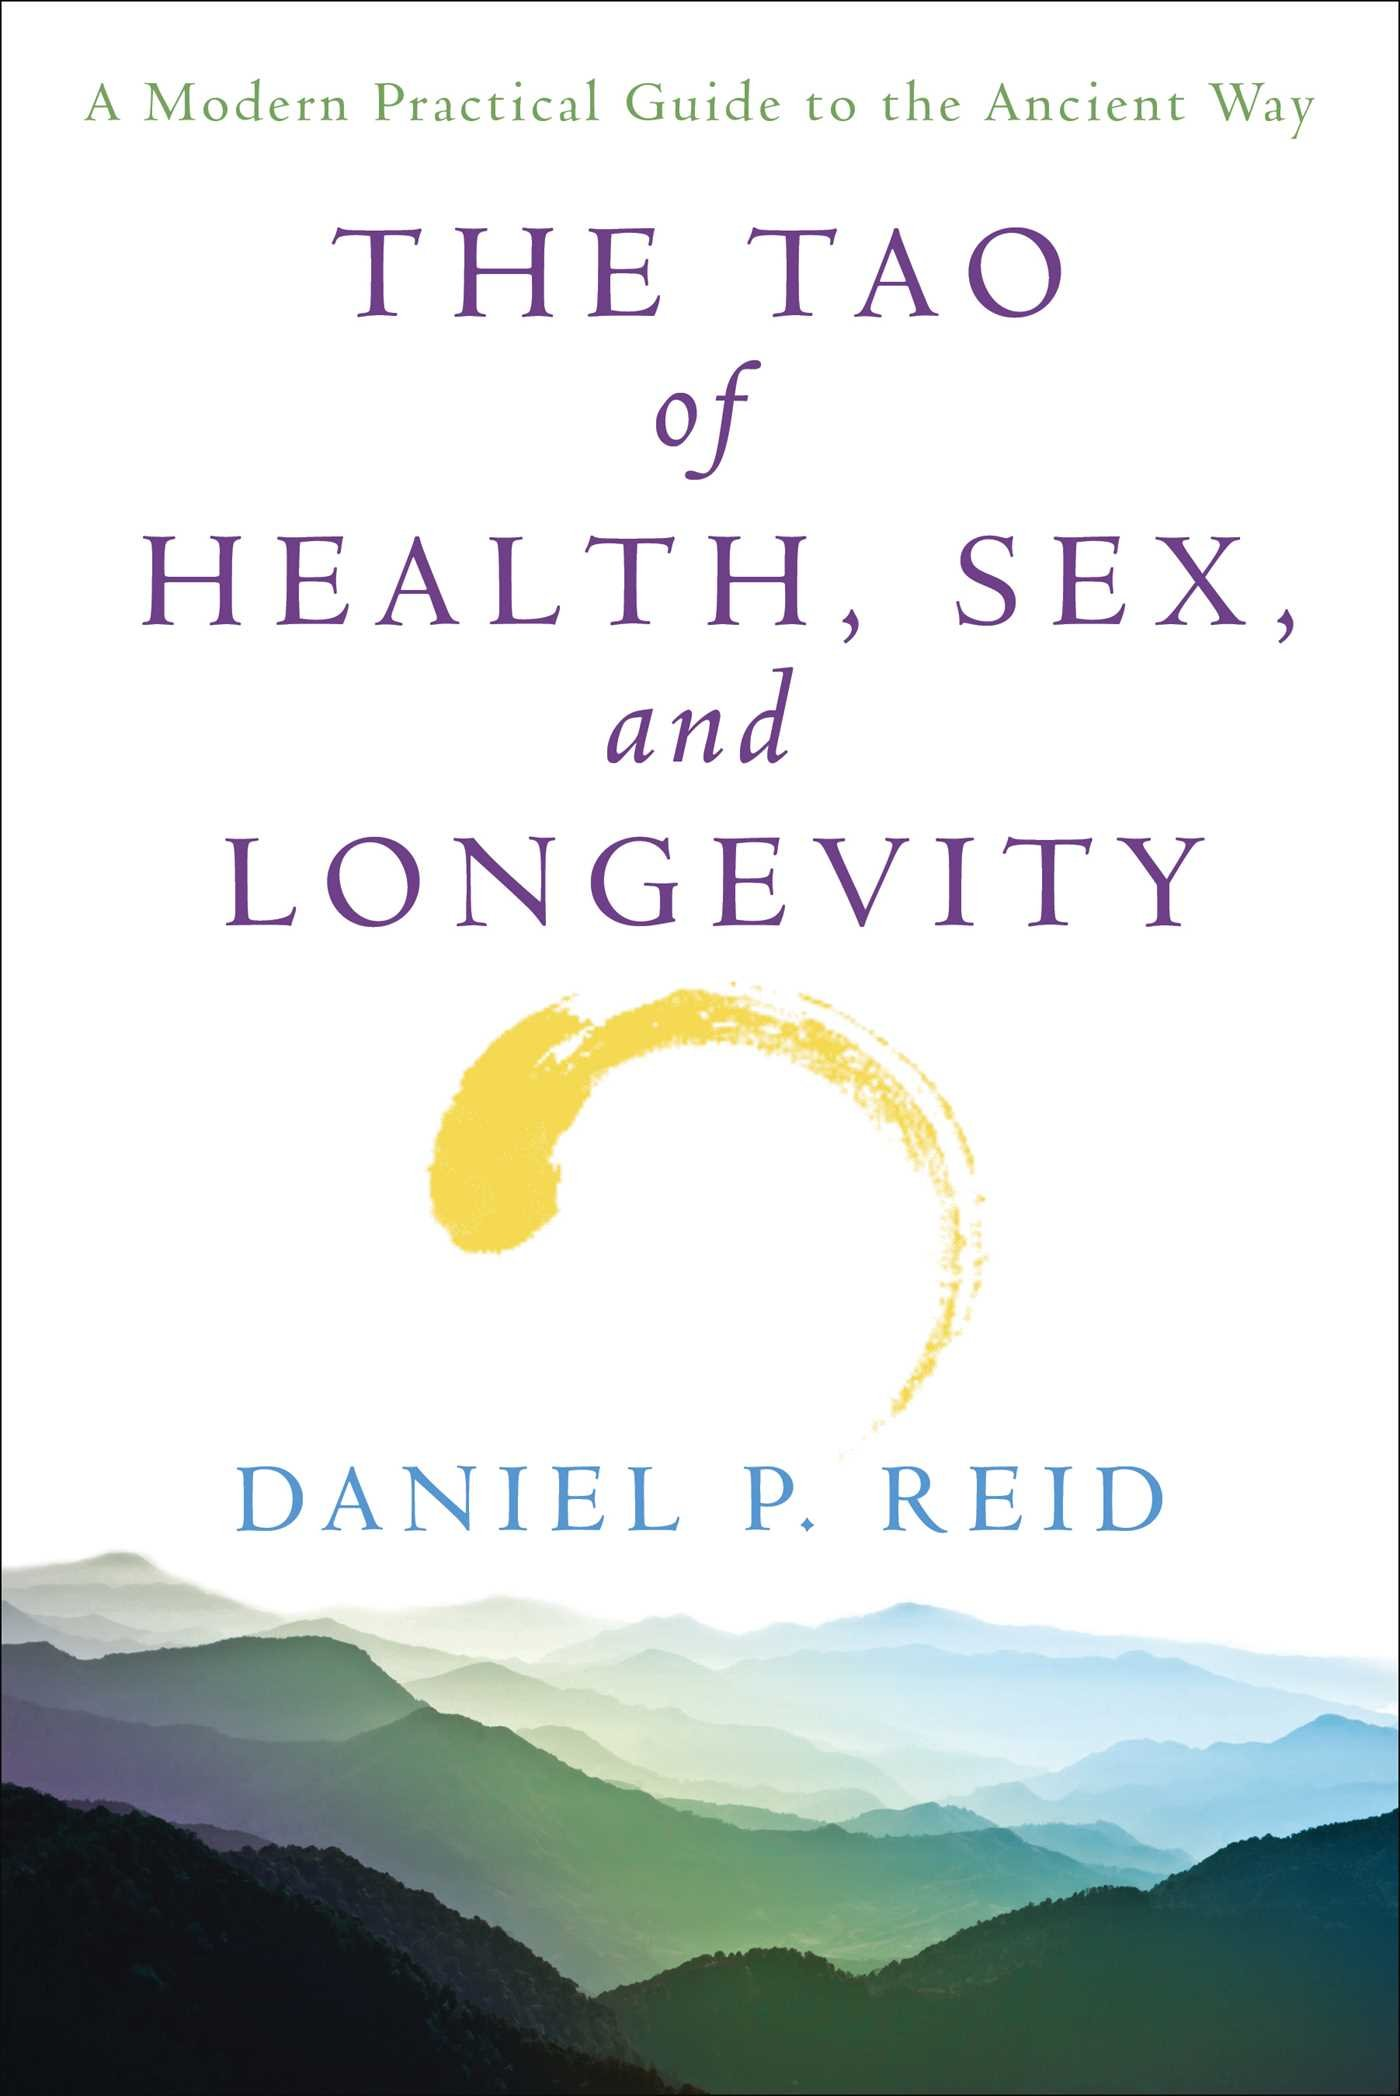 The Tao of Health, Sex, and Longevity: A Modern Practical Guide to the Ancient Way - by Daniel P. ReidWith a detailed introduction to the ancient philosophical, ethical, and religious Chinese practice of Taoism, The Tao of Health, Sex, and Longevity is a unique, comprehensive, and practical self-help guide to live a balanced and positive Taoist lifestyle.Written by a Westerner for the Western mind, The Tao of Health, Sex, and Longevity is perfect for the modern reader interested in exploring the balanced and holistic health care system used by Chinese physicians, martial artists, and meditators for over 5,000 years.Drawing on his extensive personal experience and research from original sources, author Daniel Reid covers all aspects of the healthy Taoist lifestyle, delivering concise information and instruction on diet and nutrition, fasting, breathing and exercise, sexual health, medicine, and meditation.Featuring helpful charts and illustrations, The Tao of Health, Sex and Longevity makes the ancient practice easier to understand and more applicable to a modern Western audience than ever before.